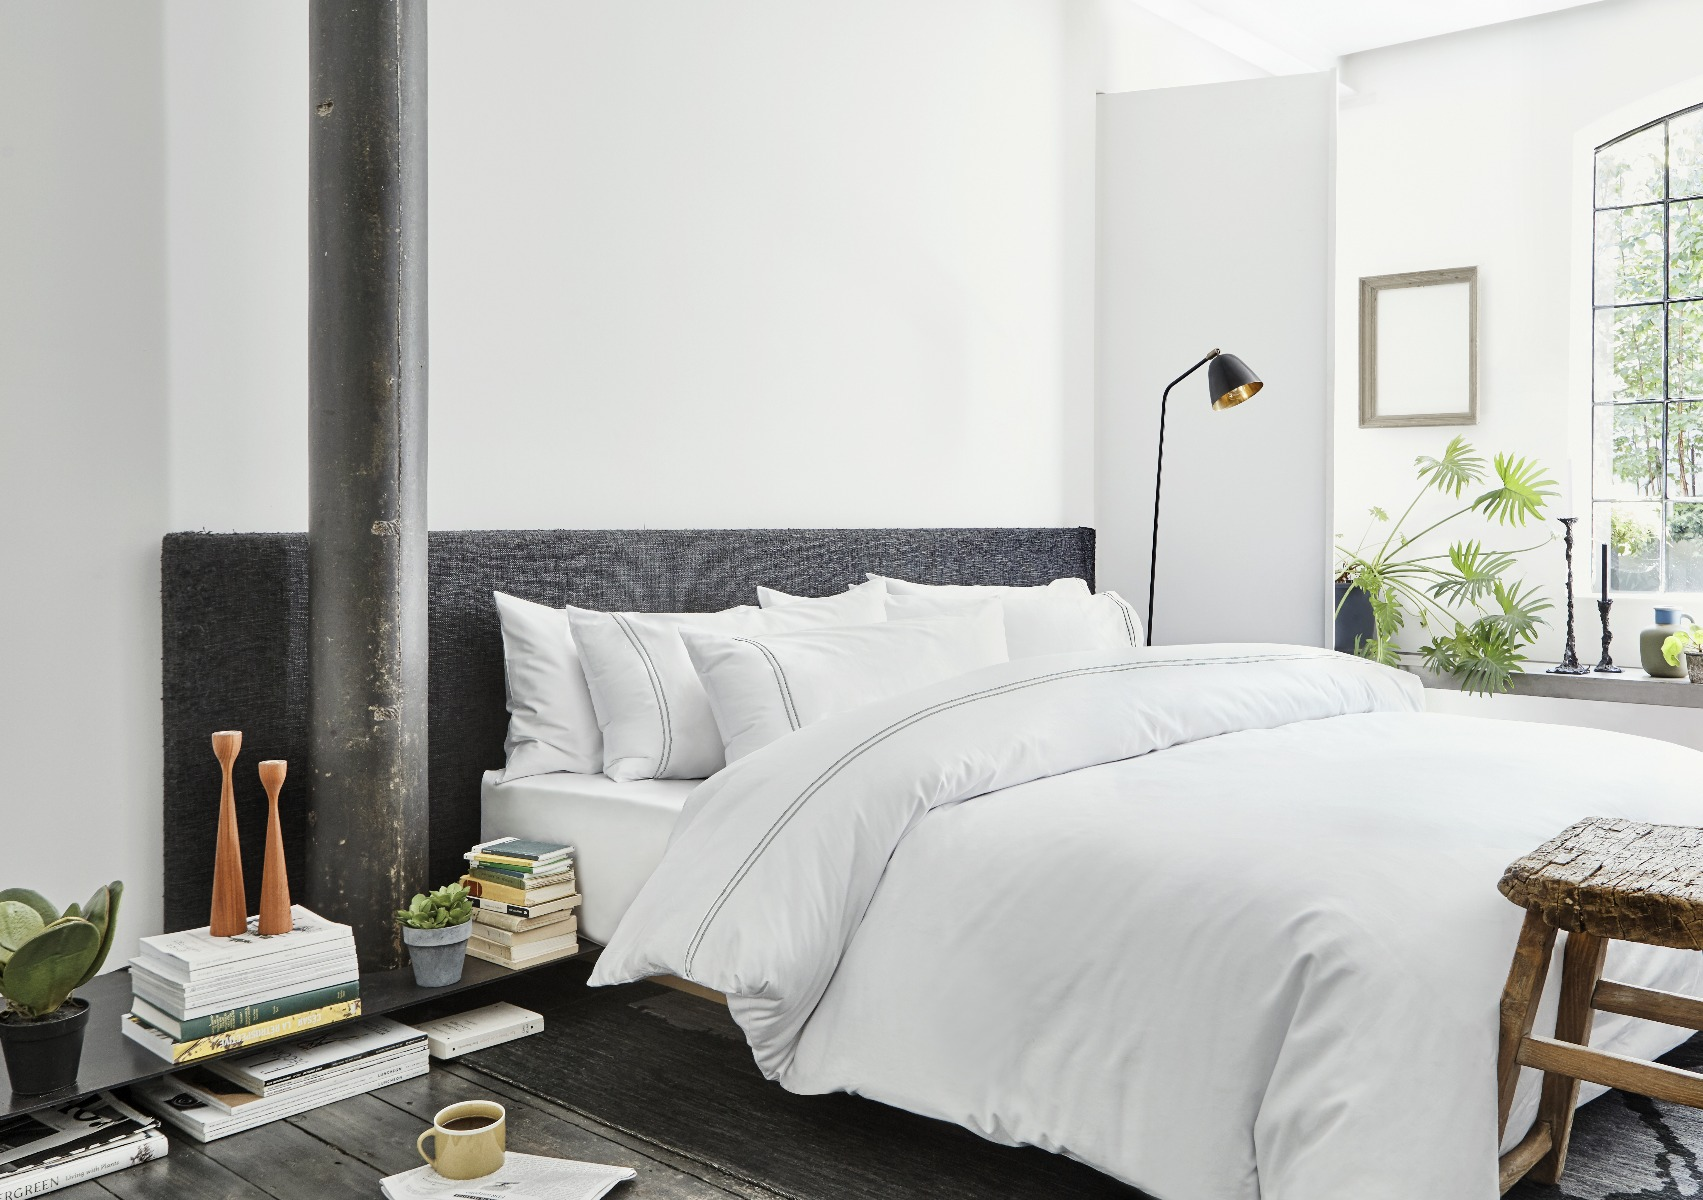 How to Buy the Perfect Bed Linen